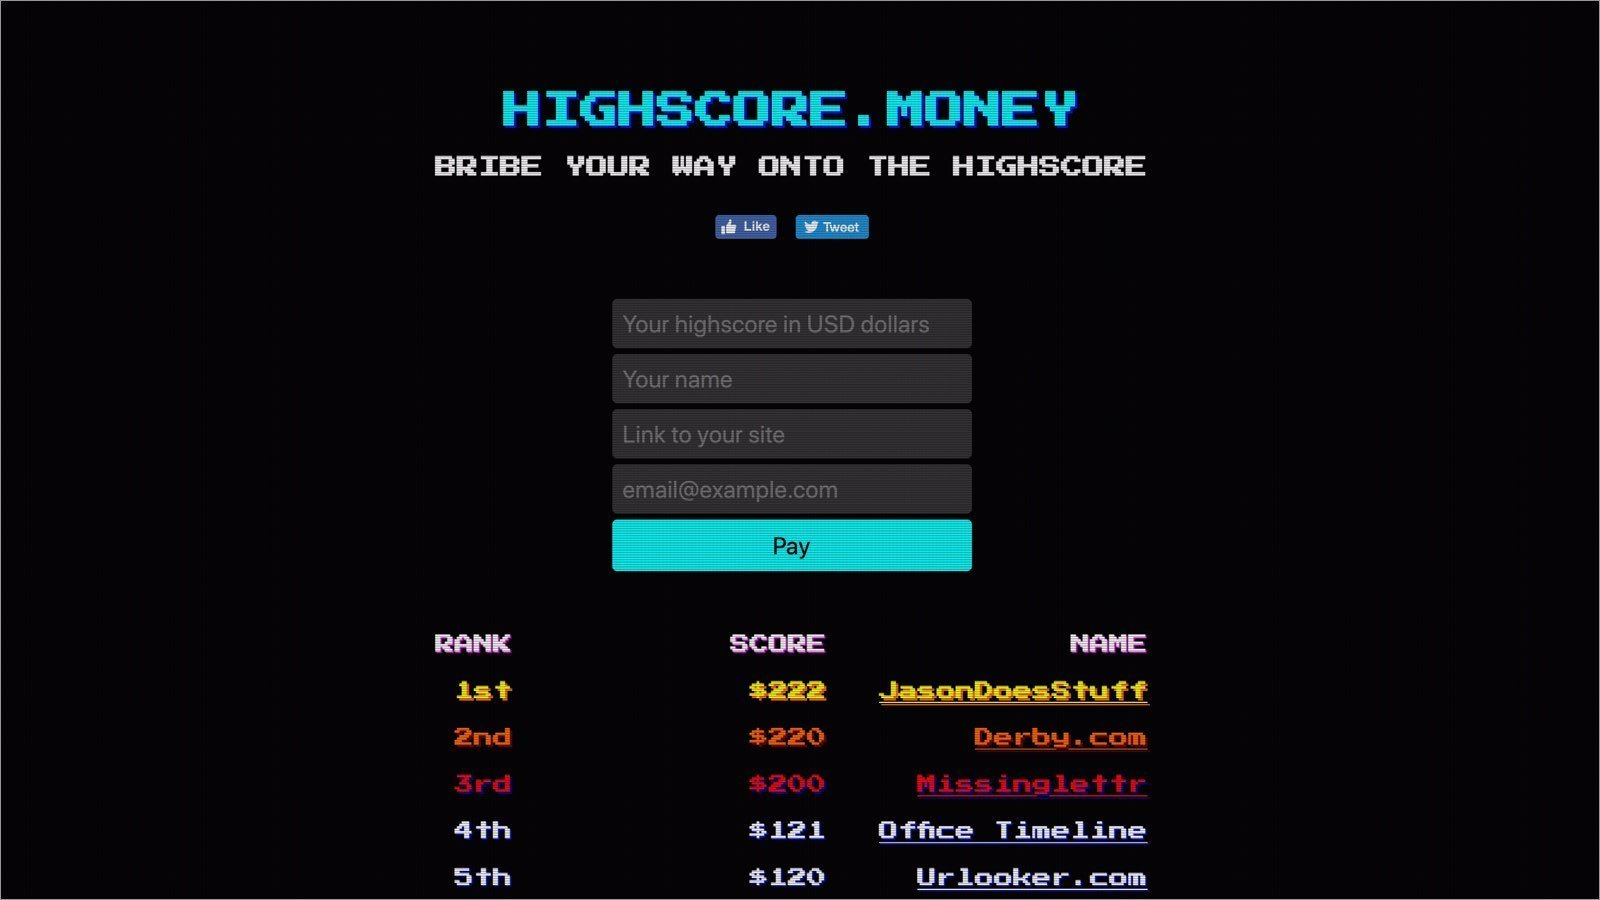 crazy business ideas Highscore.Money